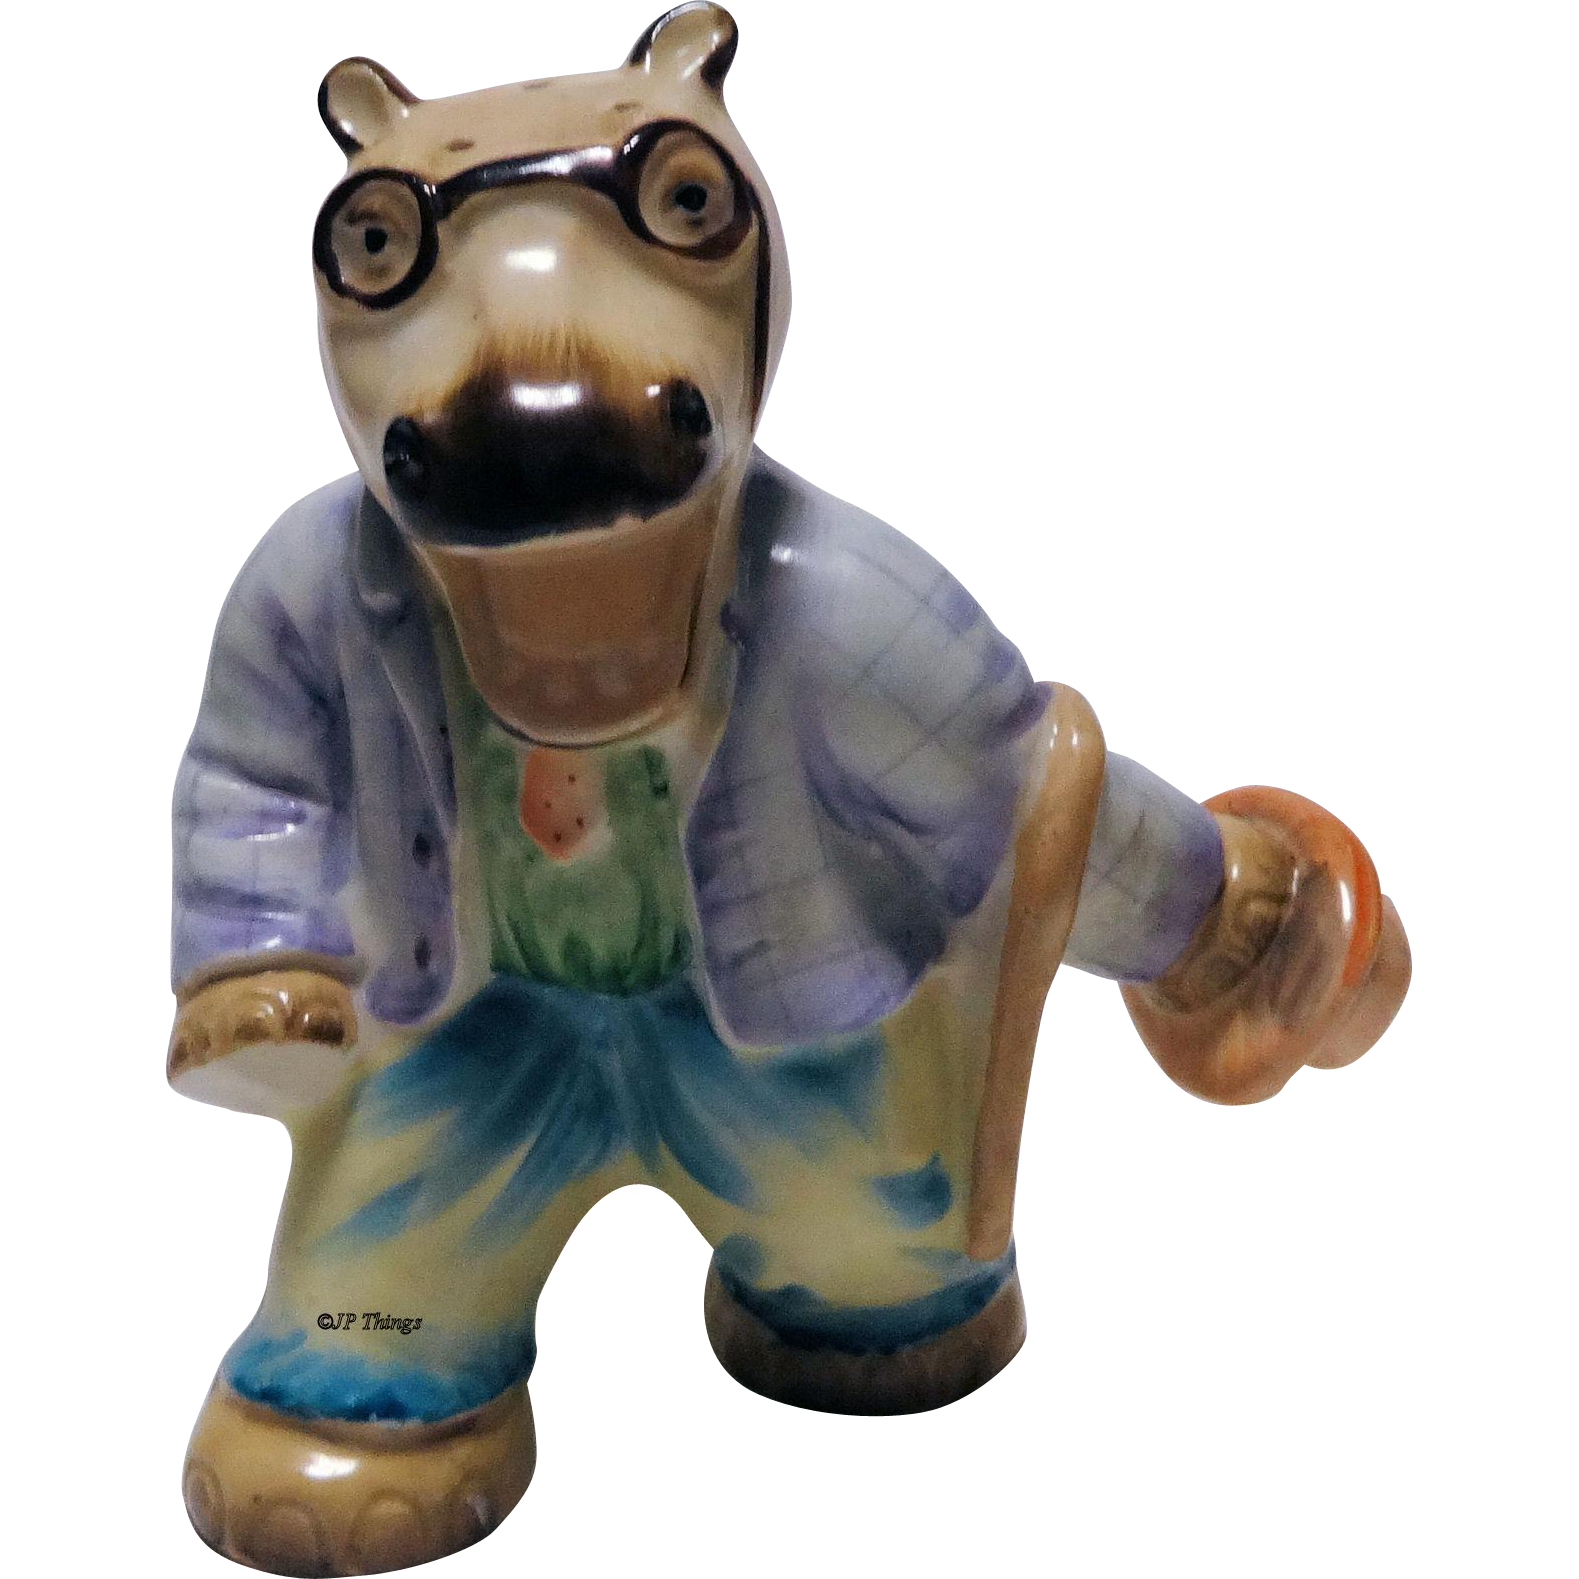 Dapper Dressed Hippopotamus Shaker Figurine with Spectacles, Cane and Hat